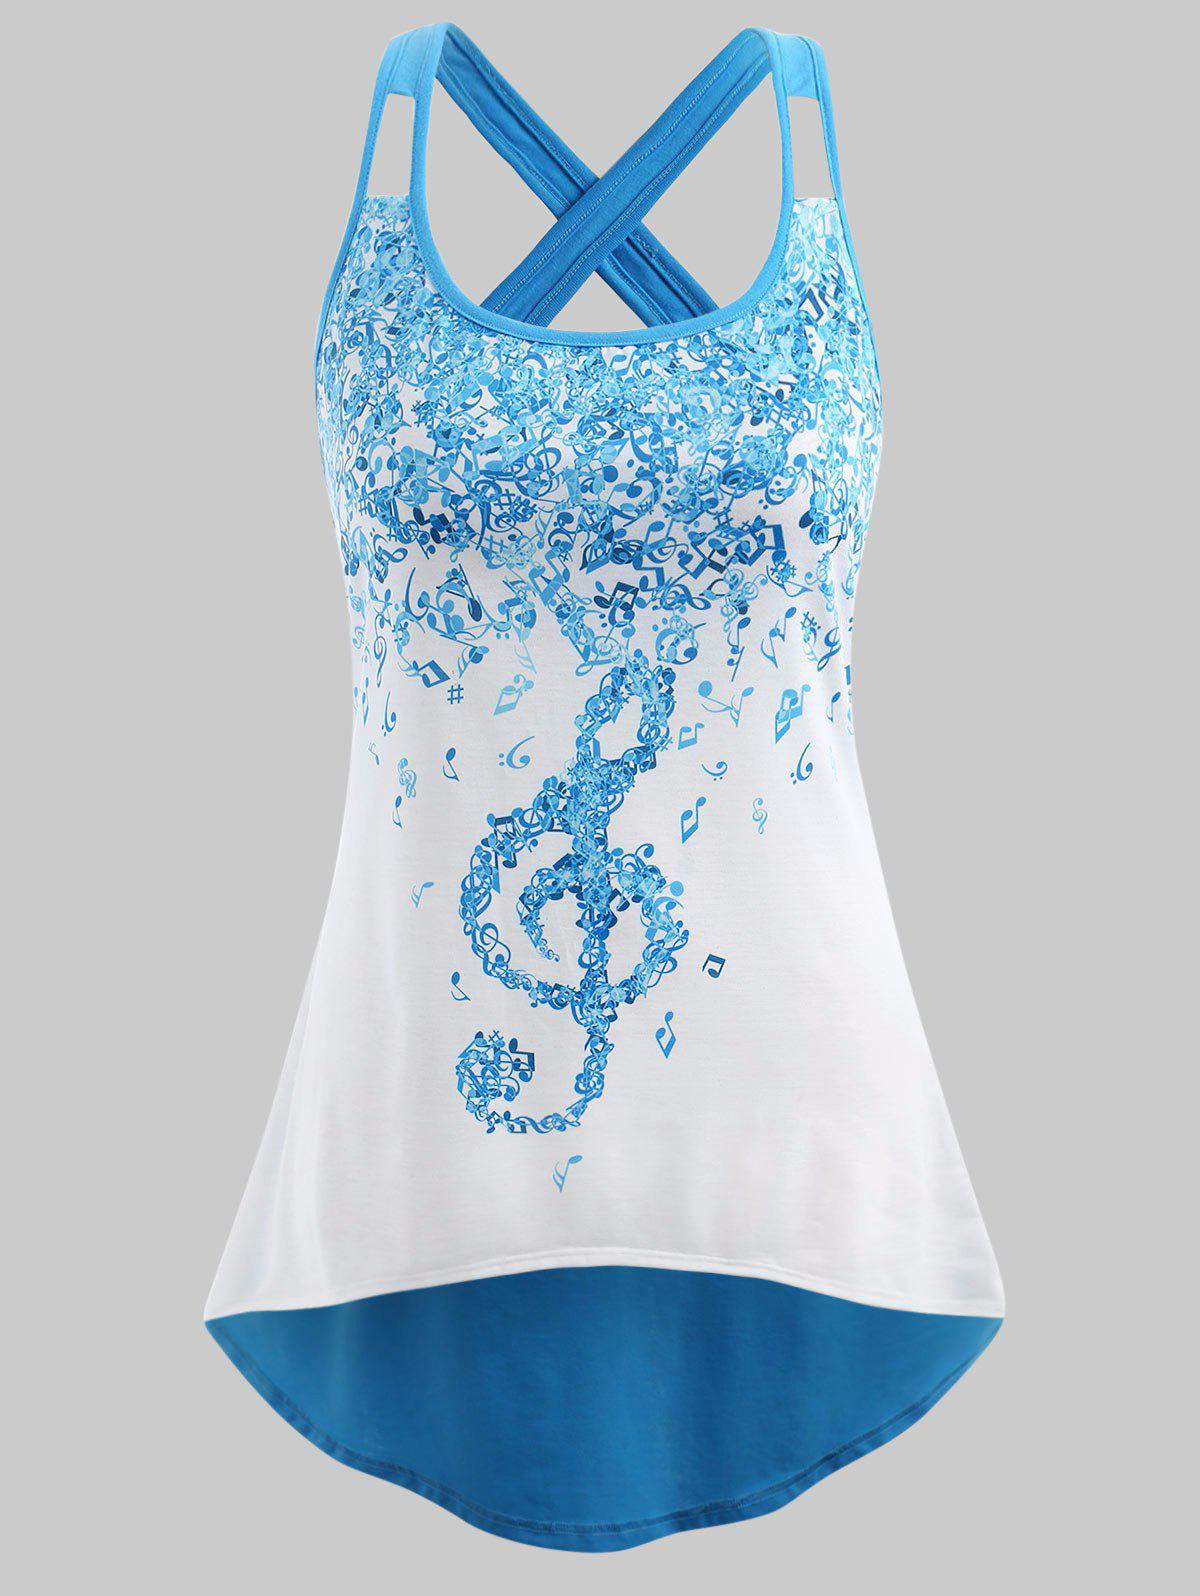 Plus Size Musical Notes Criss Cross Tank Top free shipping d75116gf d75116 qfp in stock 5pcs lot ic